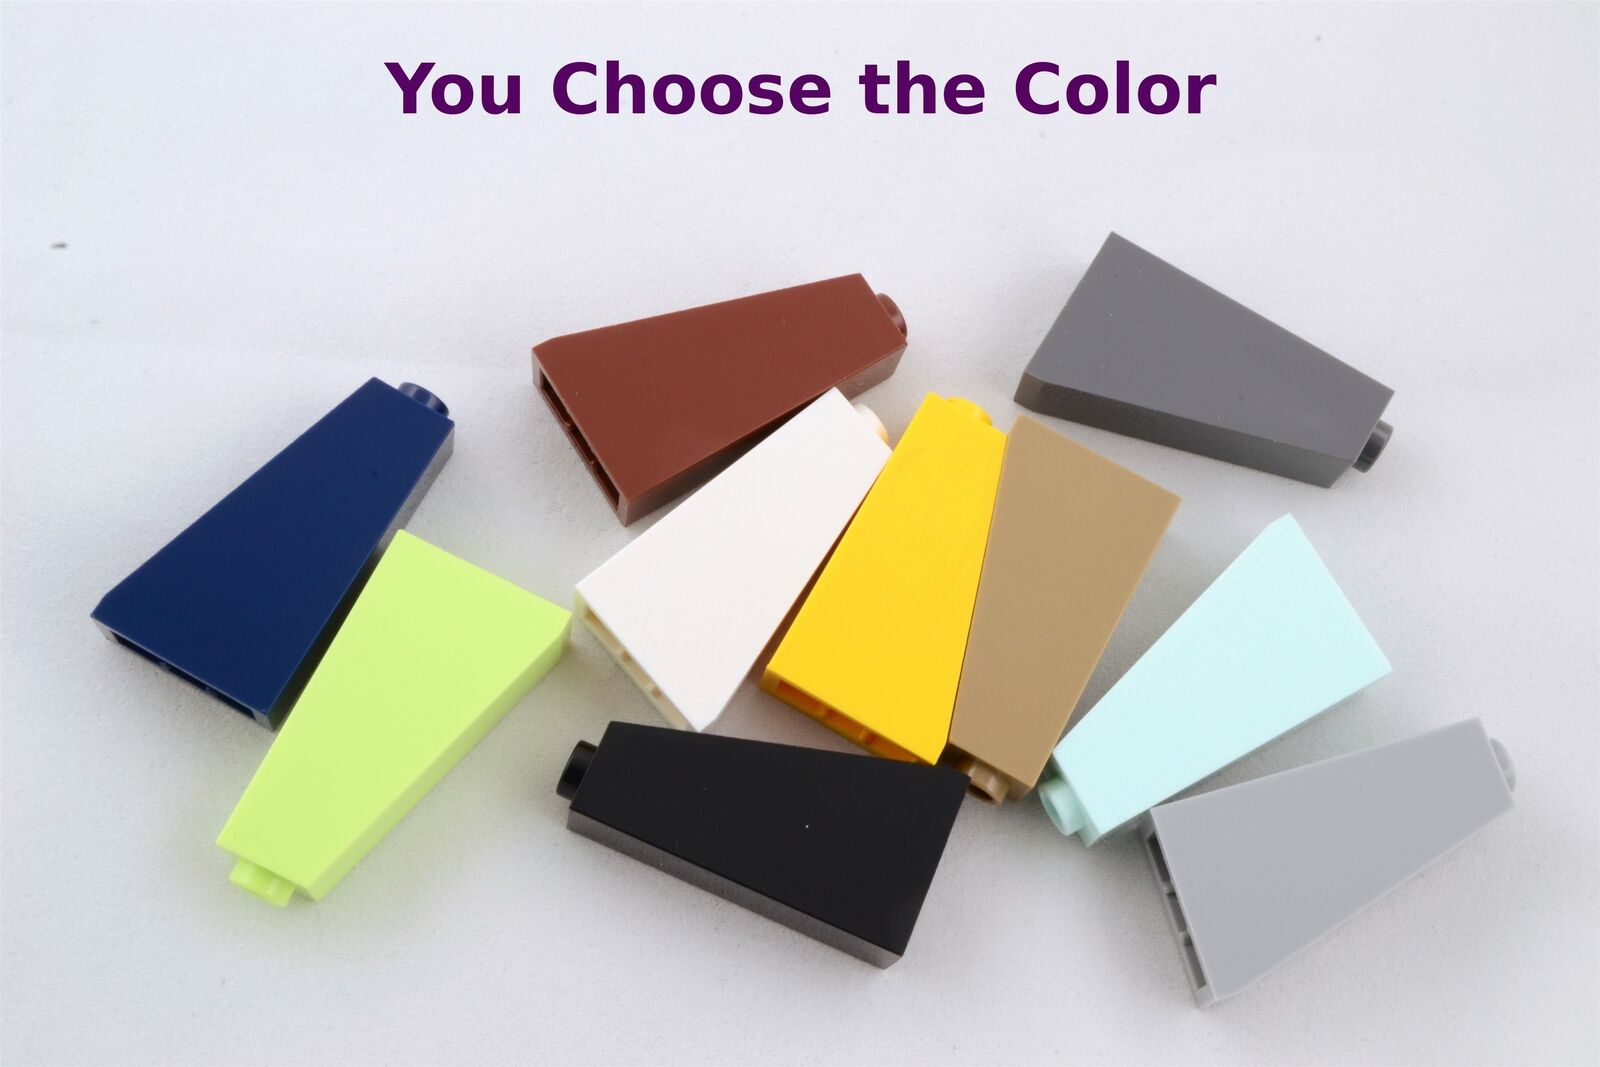 Lego 1x1 Round Plate Black Blue Red Green Gray Pink Gold Tan Trans YOU CHOOSE